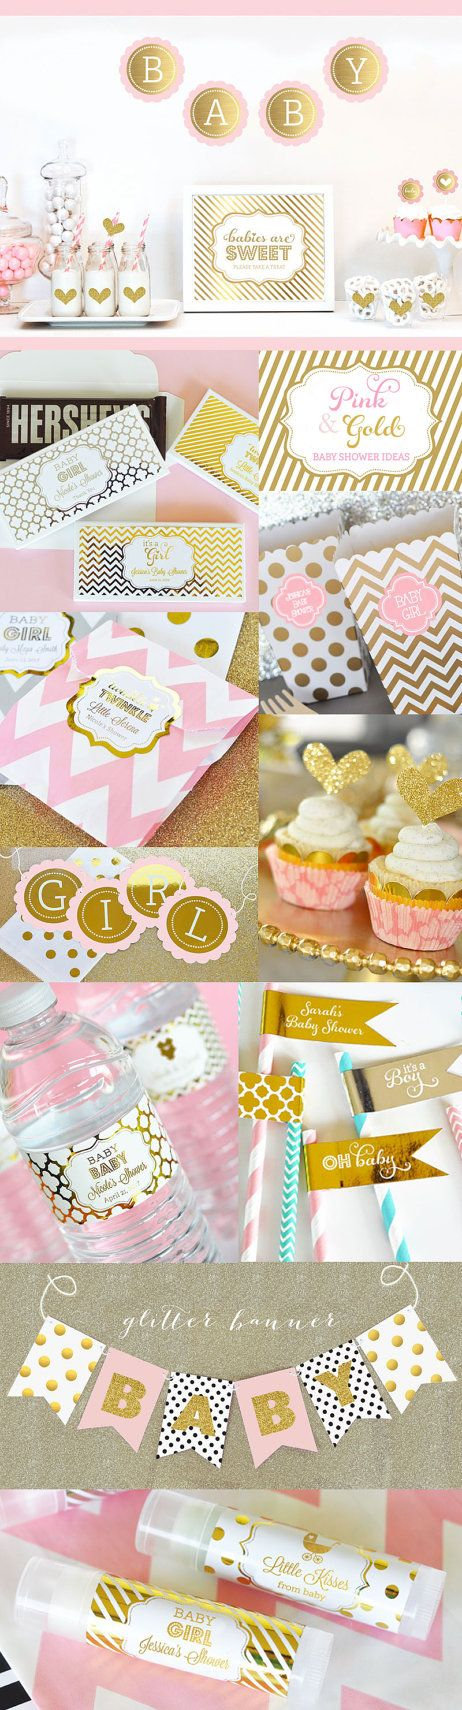 Ideas for Baby Shower Centerpieces There are many things you can use for a baby shower centerpiece. The more traditional centerpieces that are usually used for baby showers are floral arrangements.…